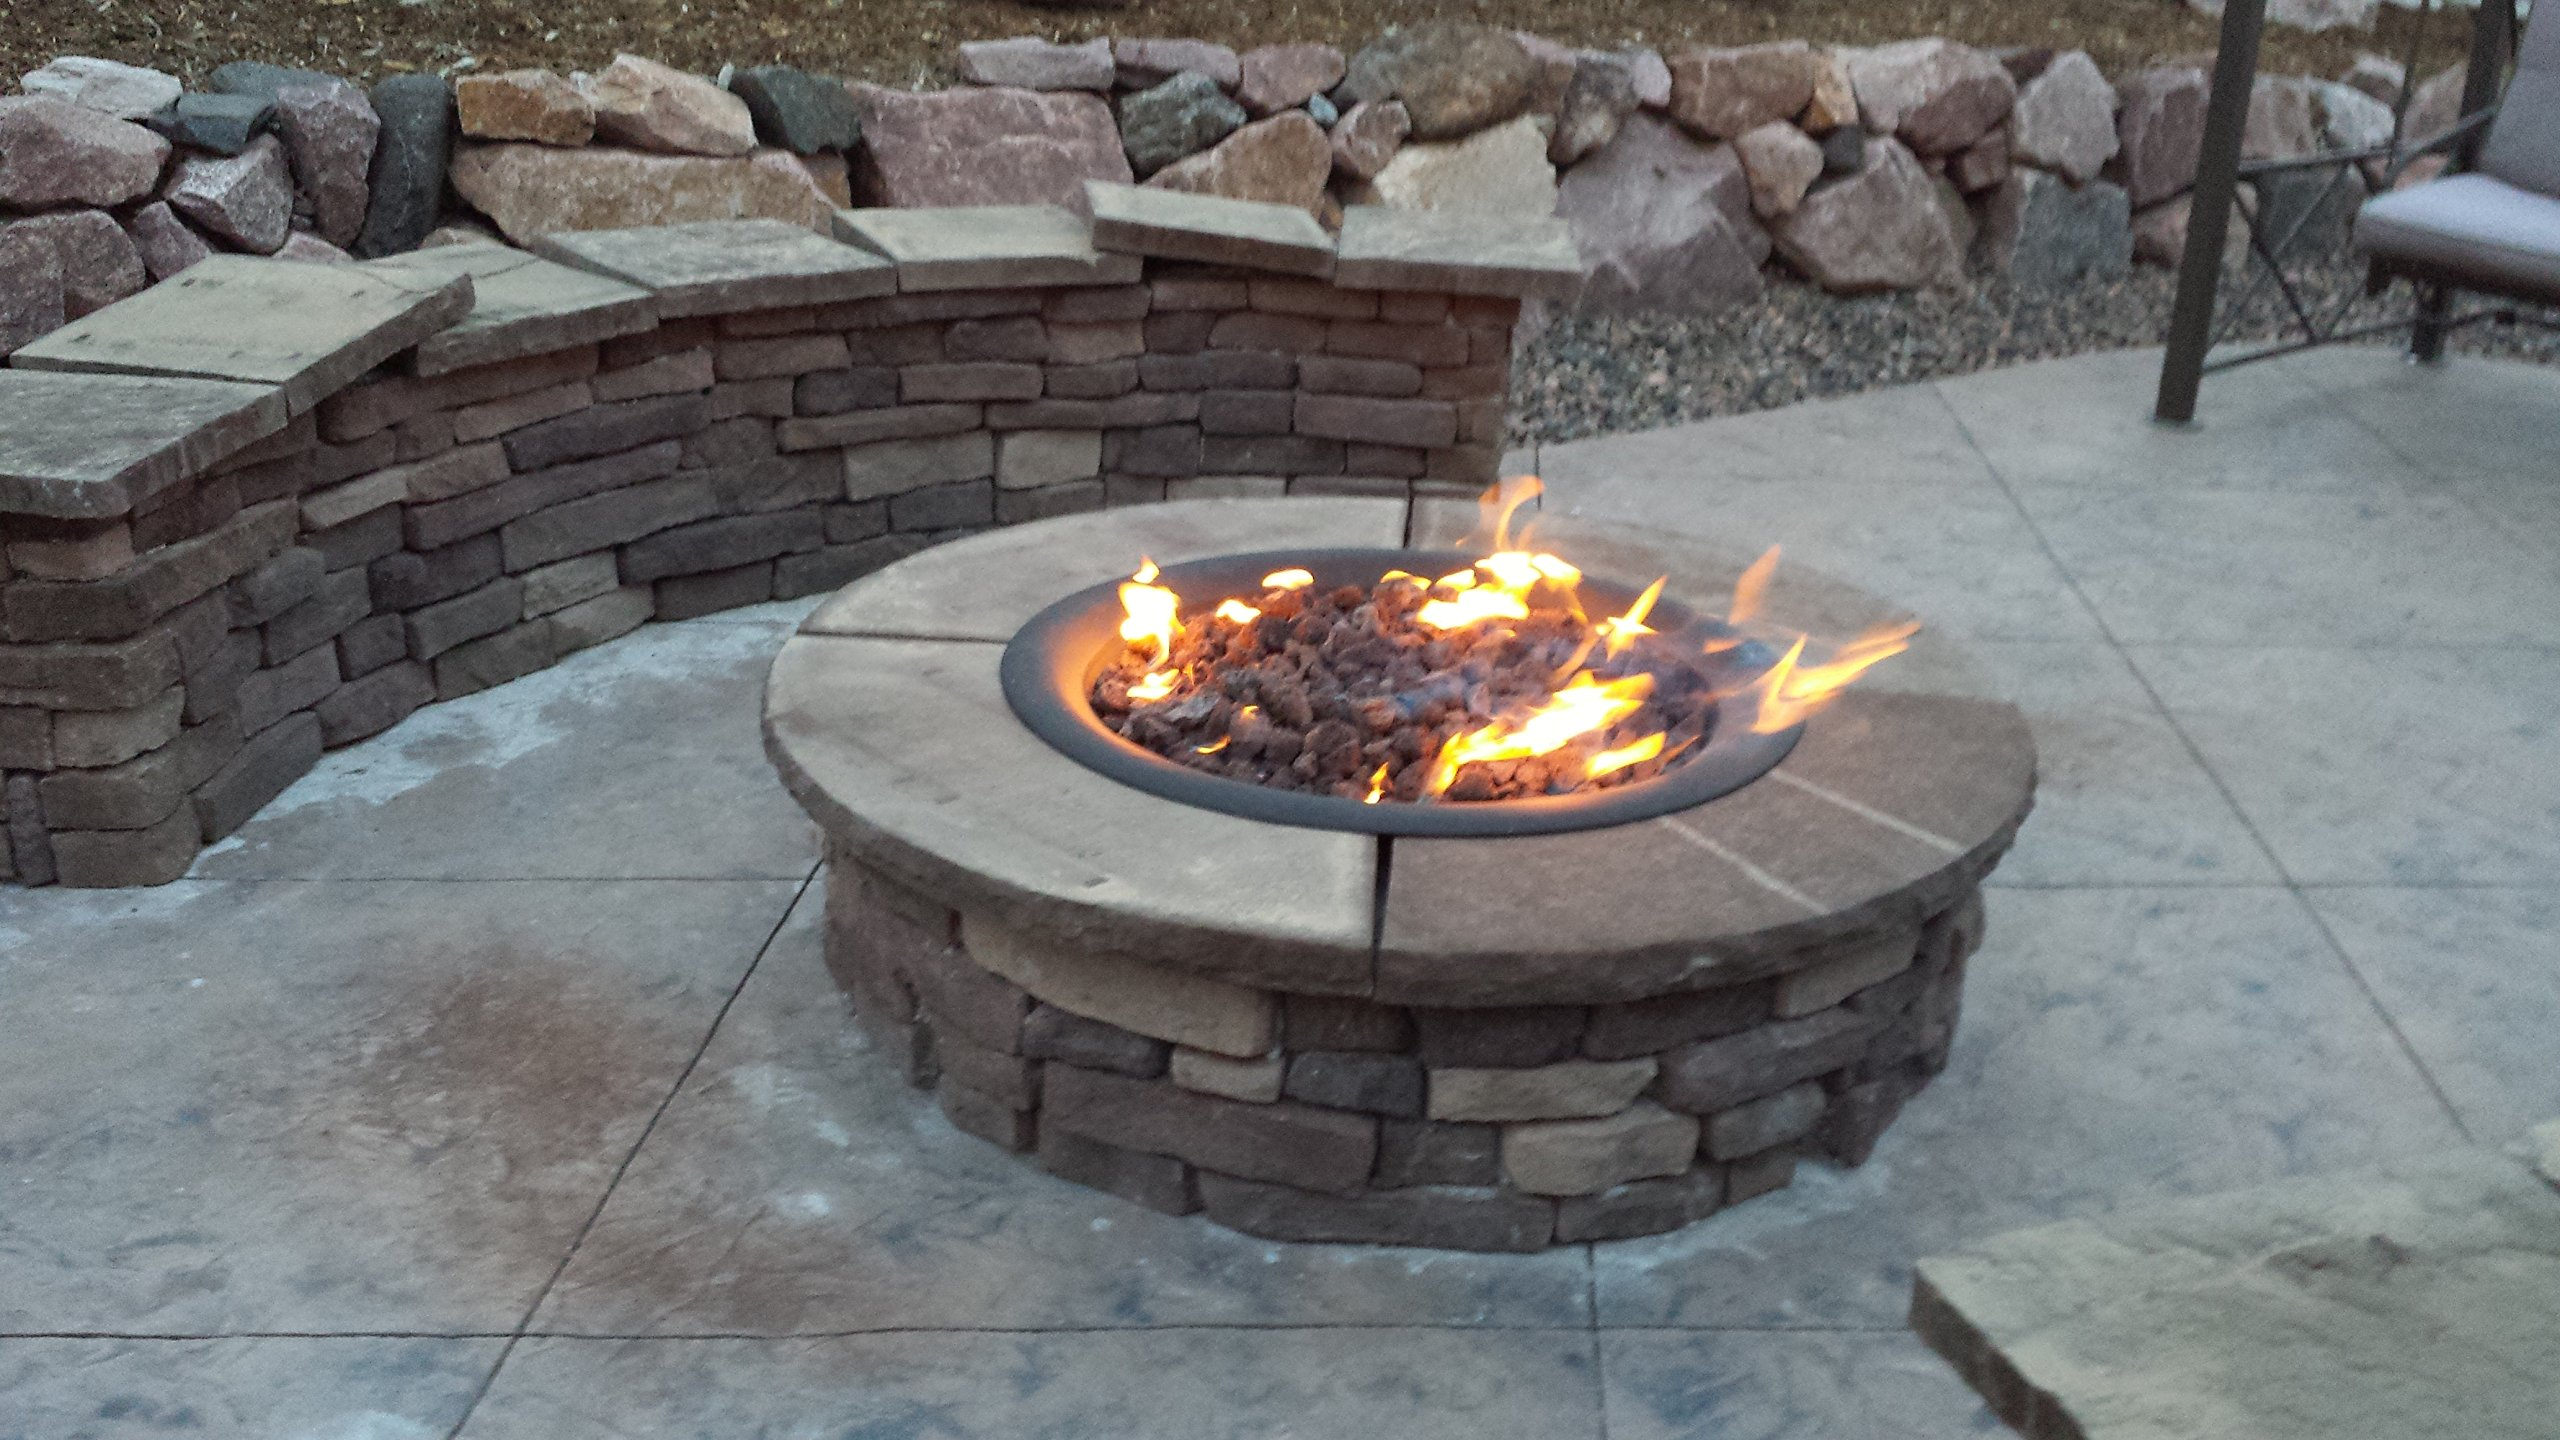 DIY Create/ Convert Existing Wood Fire Pit to Propane 36'' Double Fire Ring Complete Deluxe Fire Pit Kit; 316 Stainless Double Ring Burner & Mounting Kit, 12' Hose & Fittings w/ Key Valve On/ Off and Intensity Control So You Dont Have to See the Tank; FR36